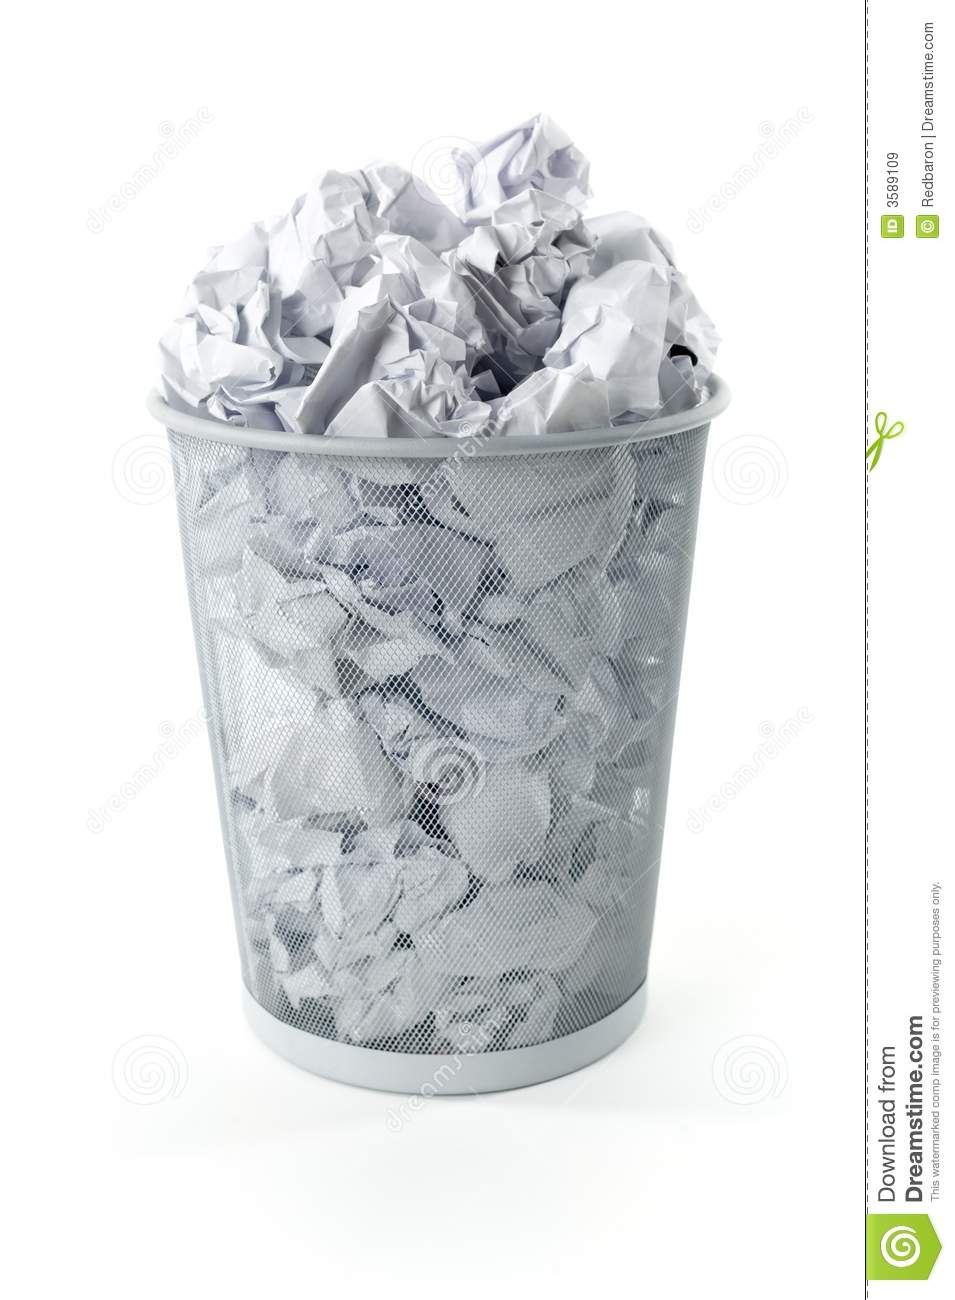 Full trashcan stock image Image of isolated metal office  3589109